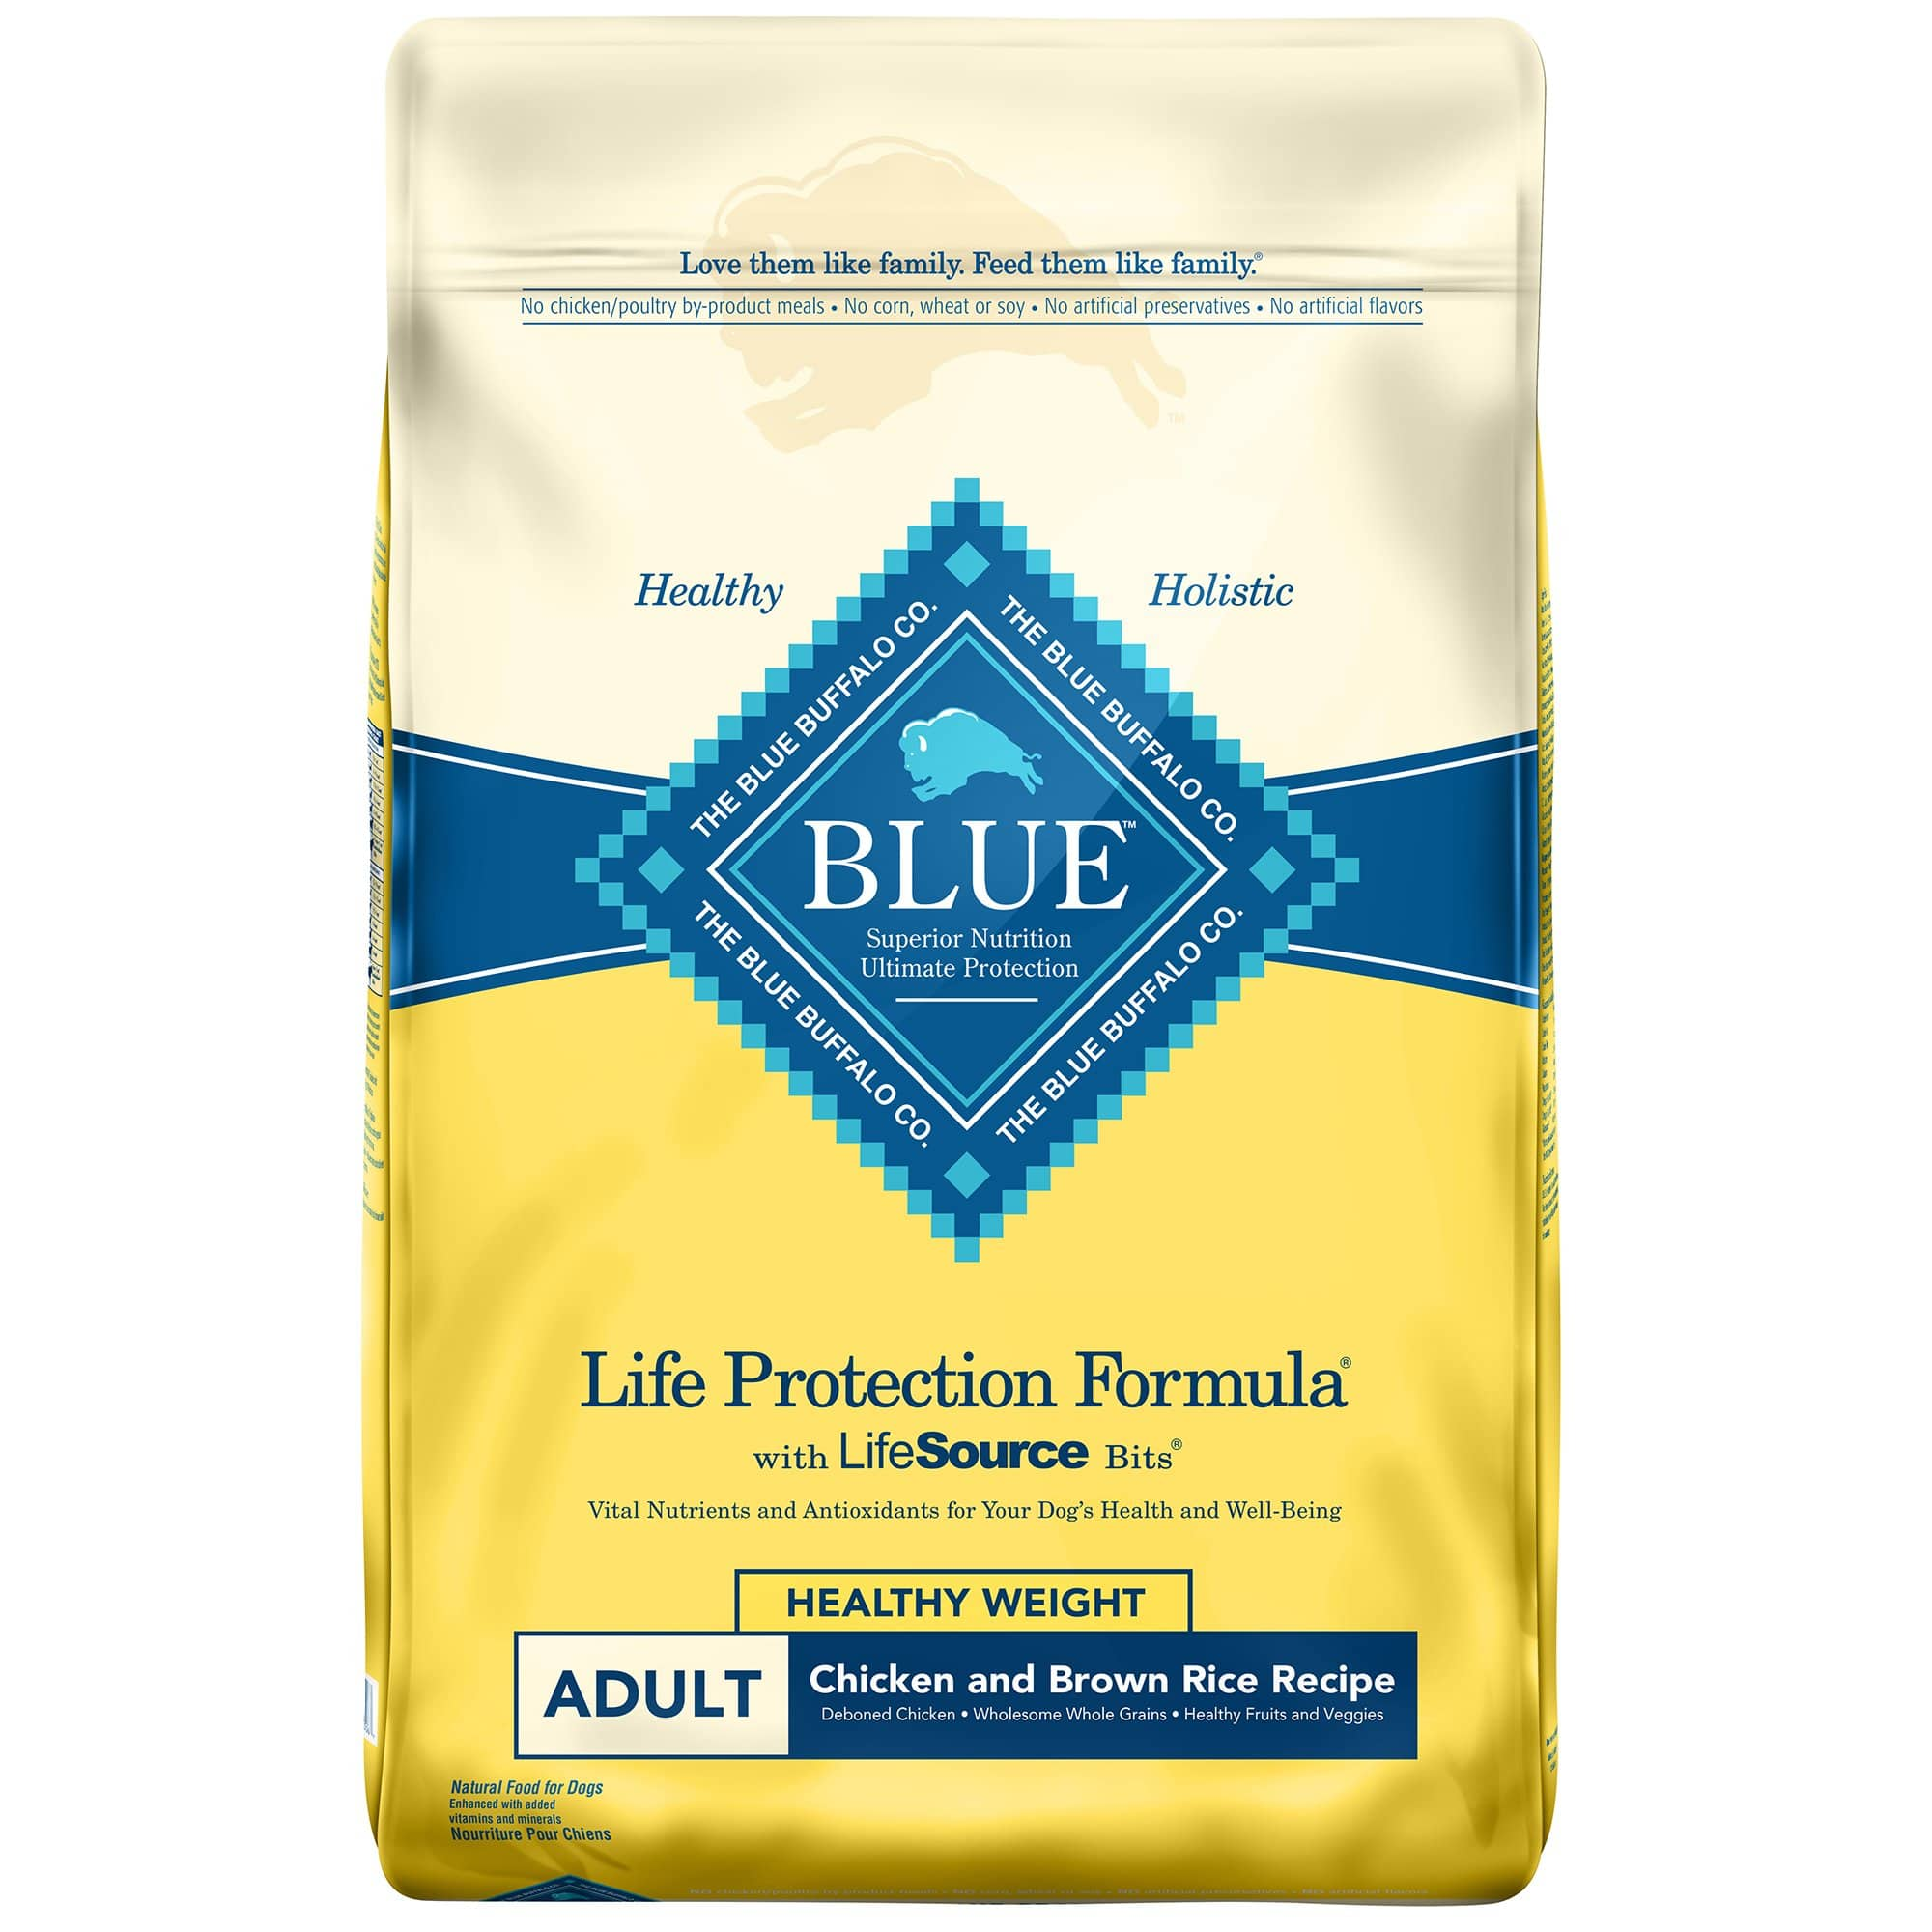 New Petco Repeat Delivery Customers: 60-Lbs Blue Buffalo Life Protection Formula Healthy Weight Adult Dry Dog Food $41.55 w/ Repeat Delivery + Free Shipping